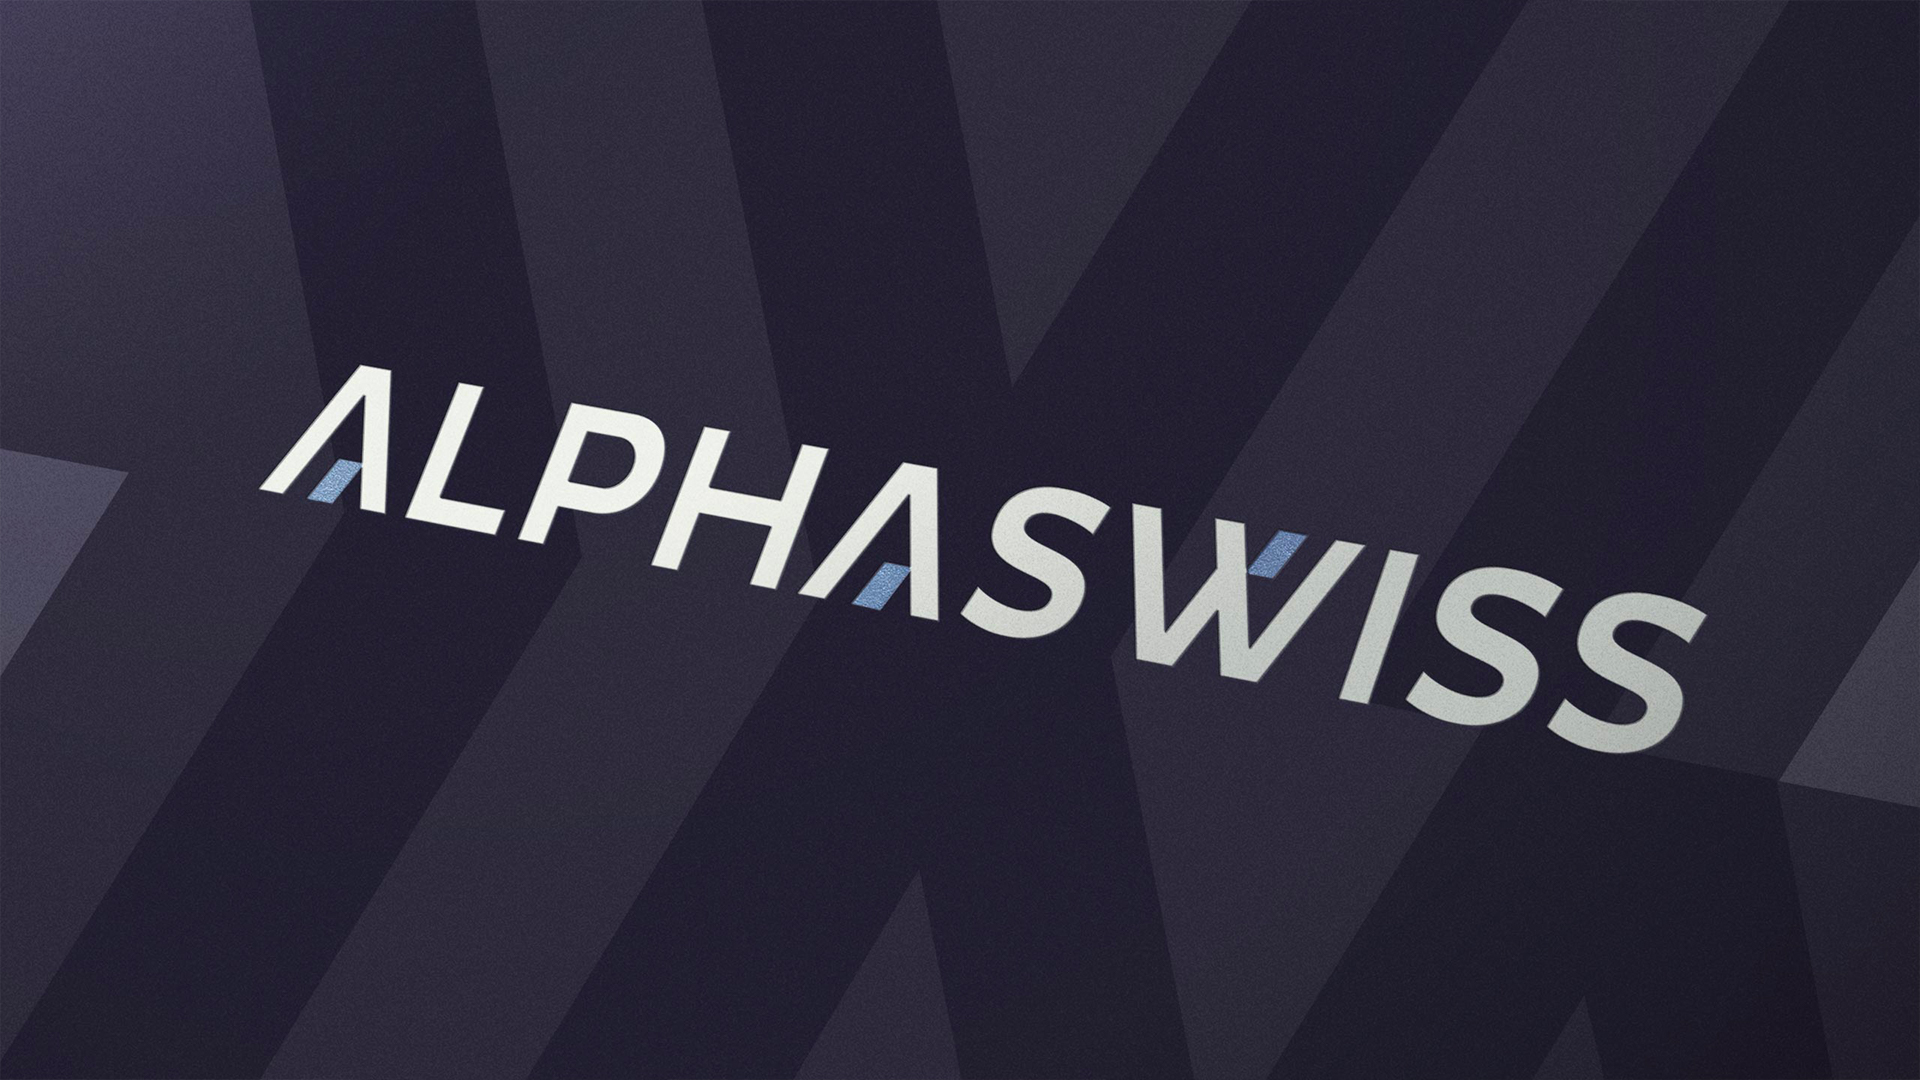 Alphaswiss